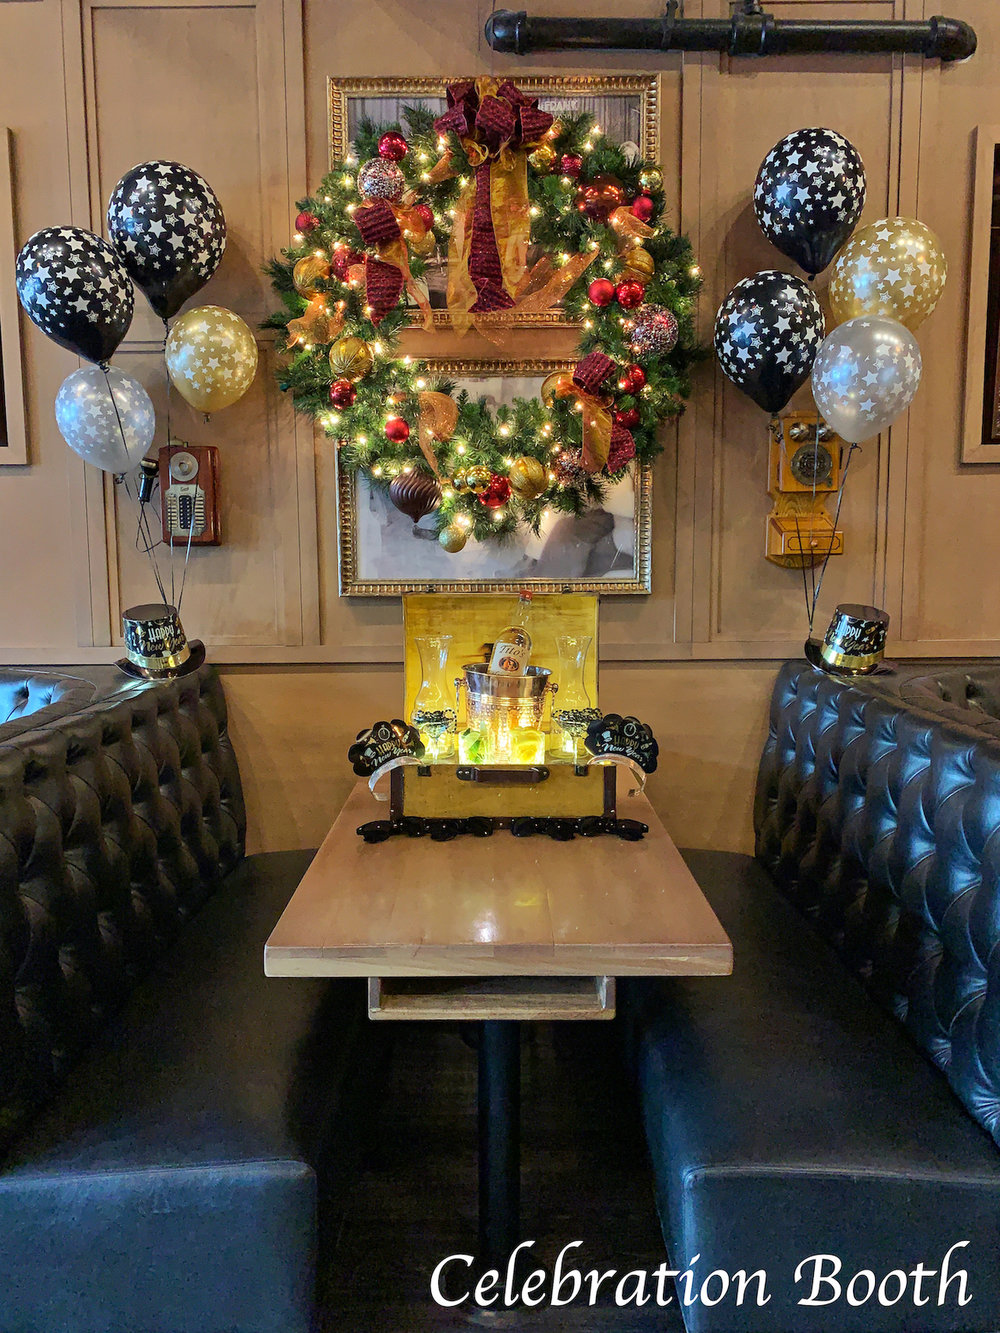 NYE Celebration Booth.jpg